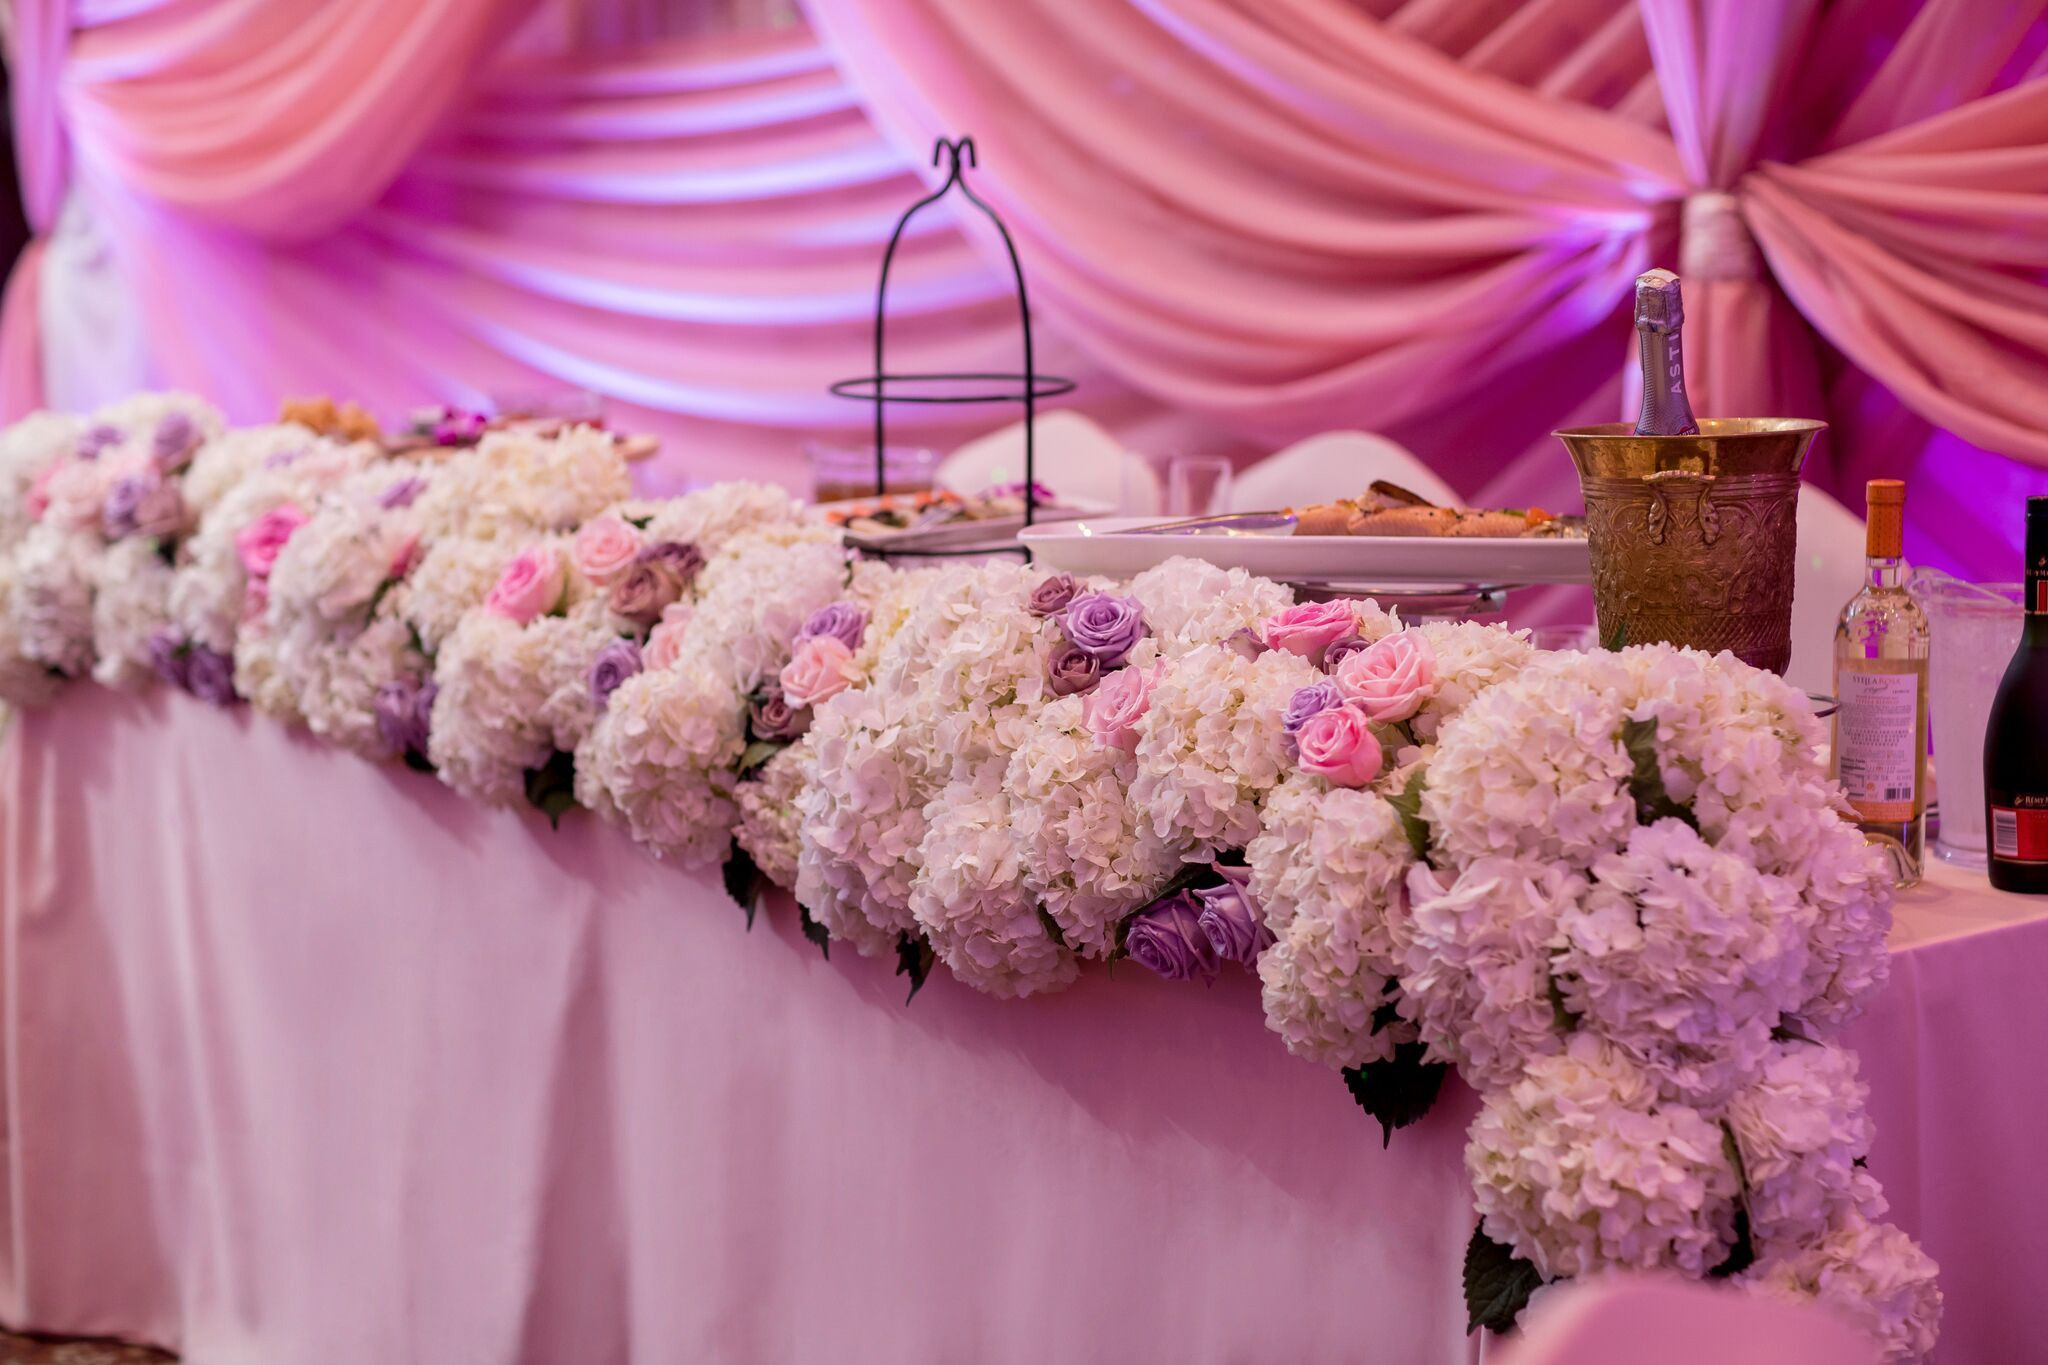 Lavender wedding decor ideas  Wedding head table  head table wedding decorations  Pinterest